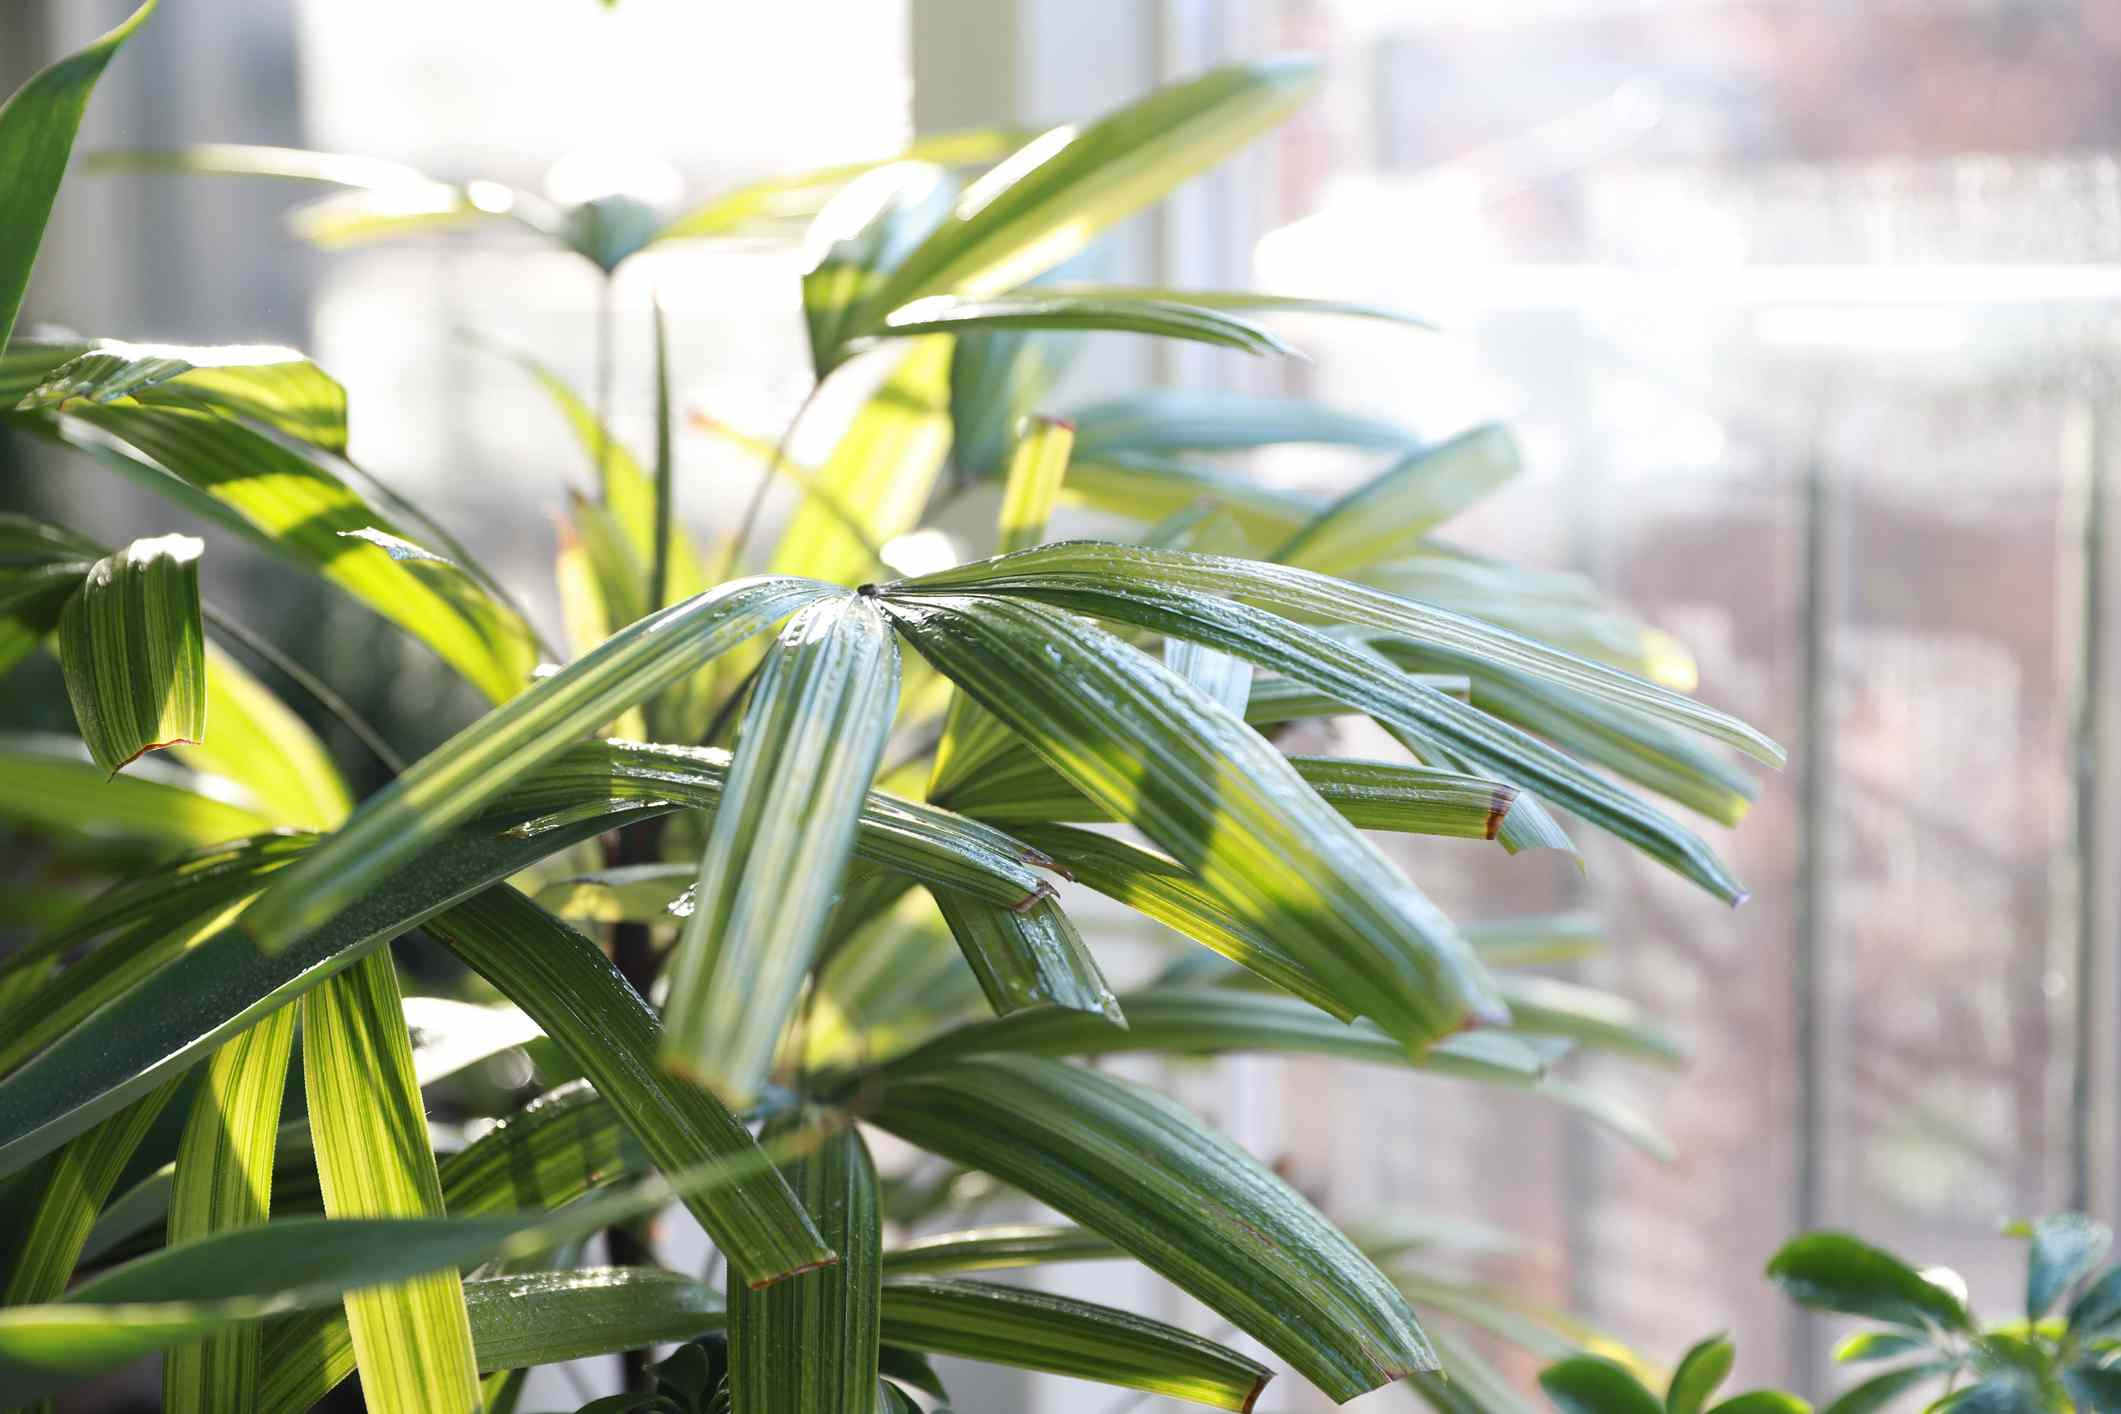 Bamboo palm leaves in sunlight indoors